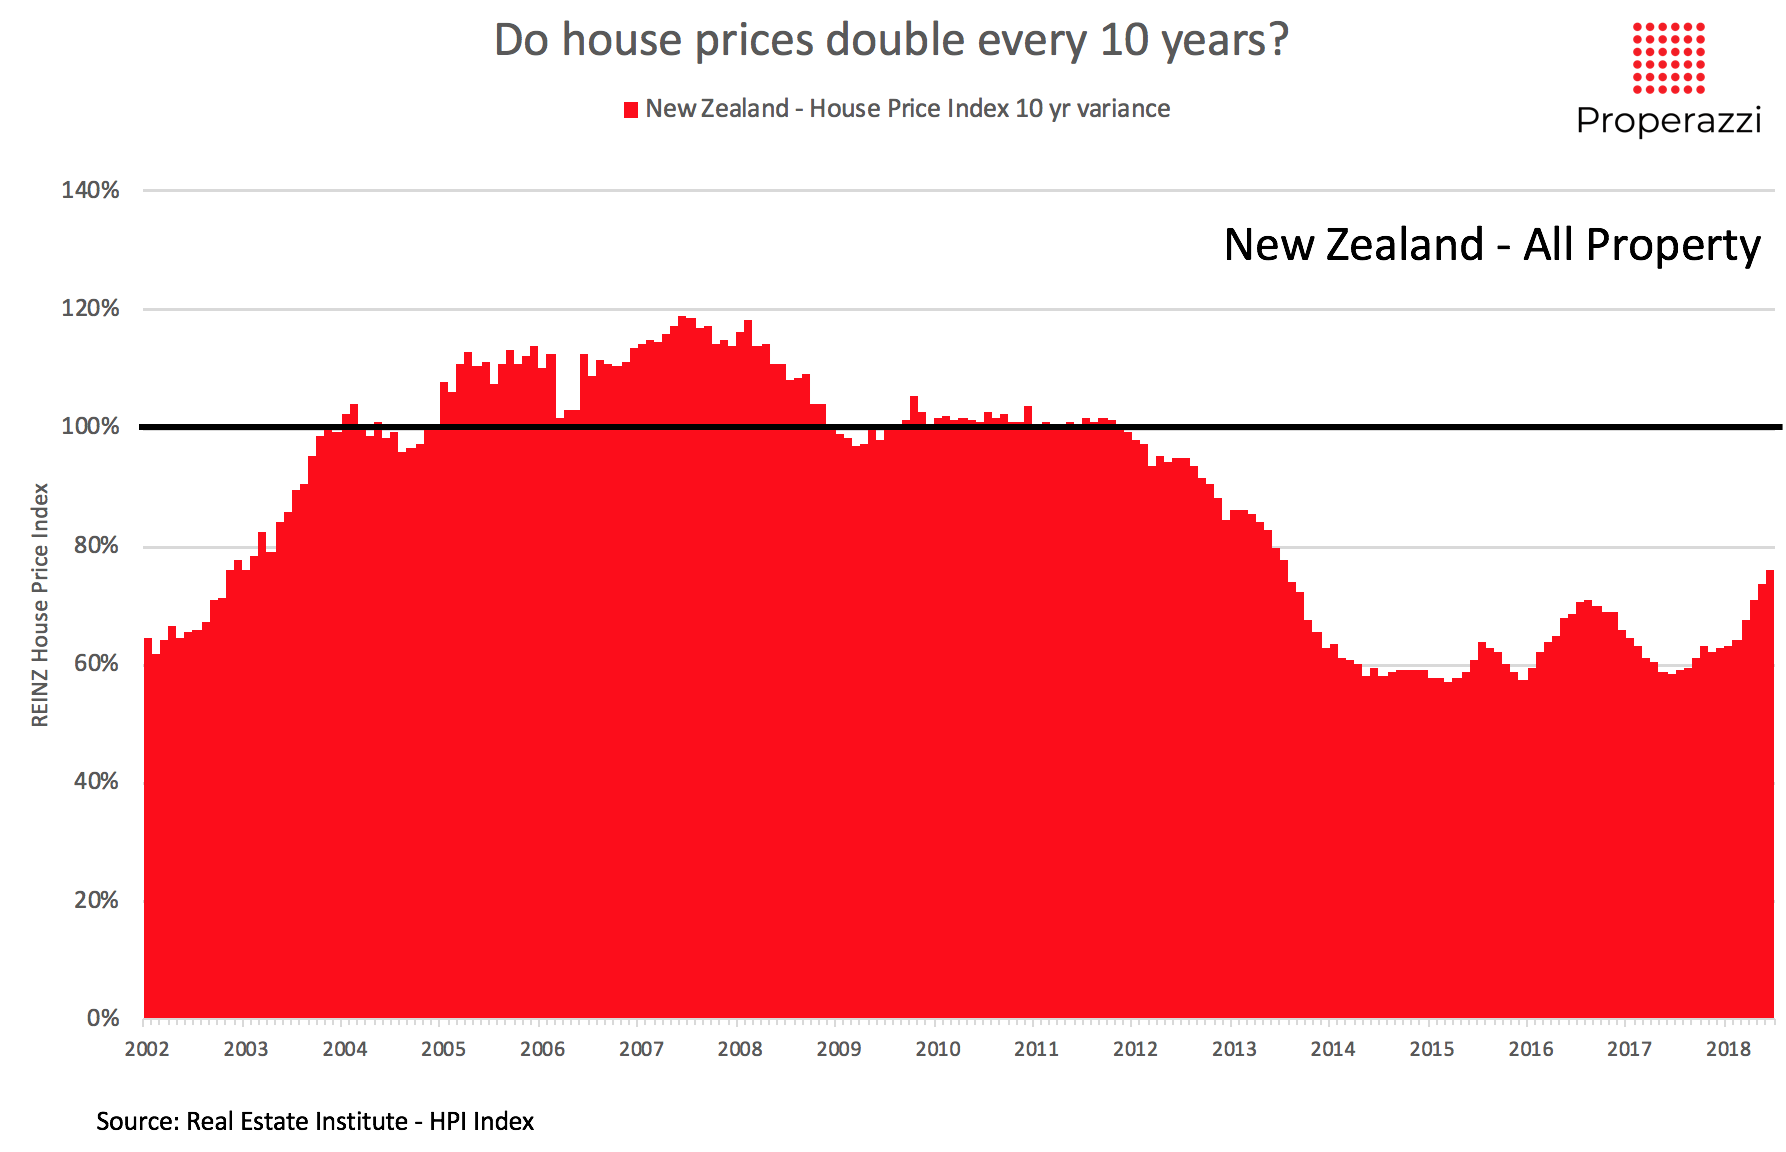 Do house prices double every 10 yrs - NZ data.png